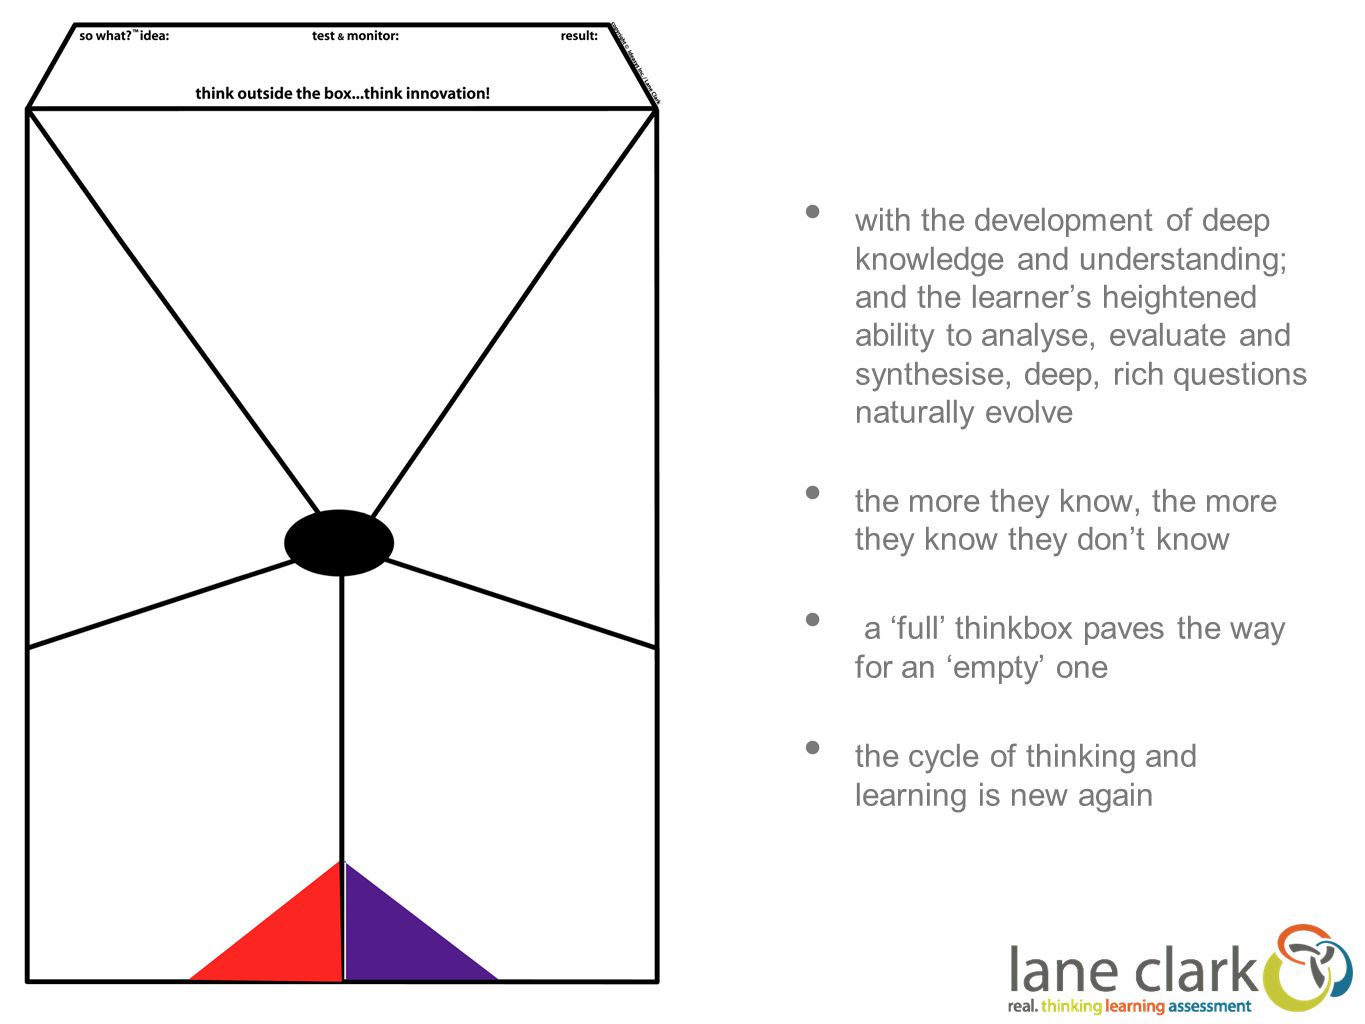 with the development of deep knowledge and understanding; and the learner's heightened ability to analyse, evaluate and synthesise, deep, rich questions naturally evolve the more they know, the more they know they don't know a 'full' thinkbox paves the way for an 'empty' one the cycle of thinking and learning is new again